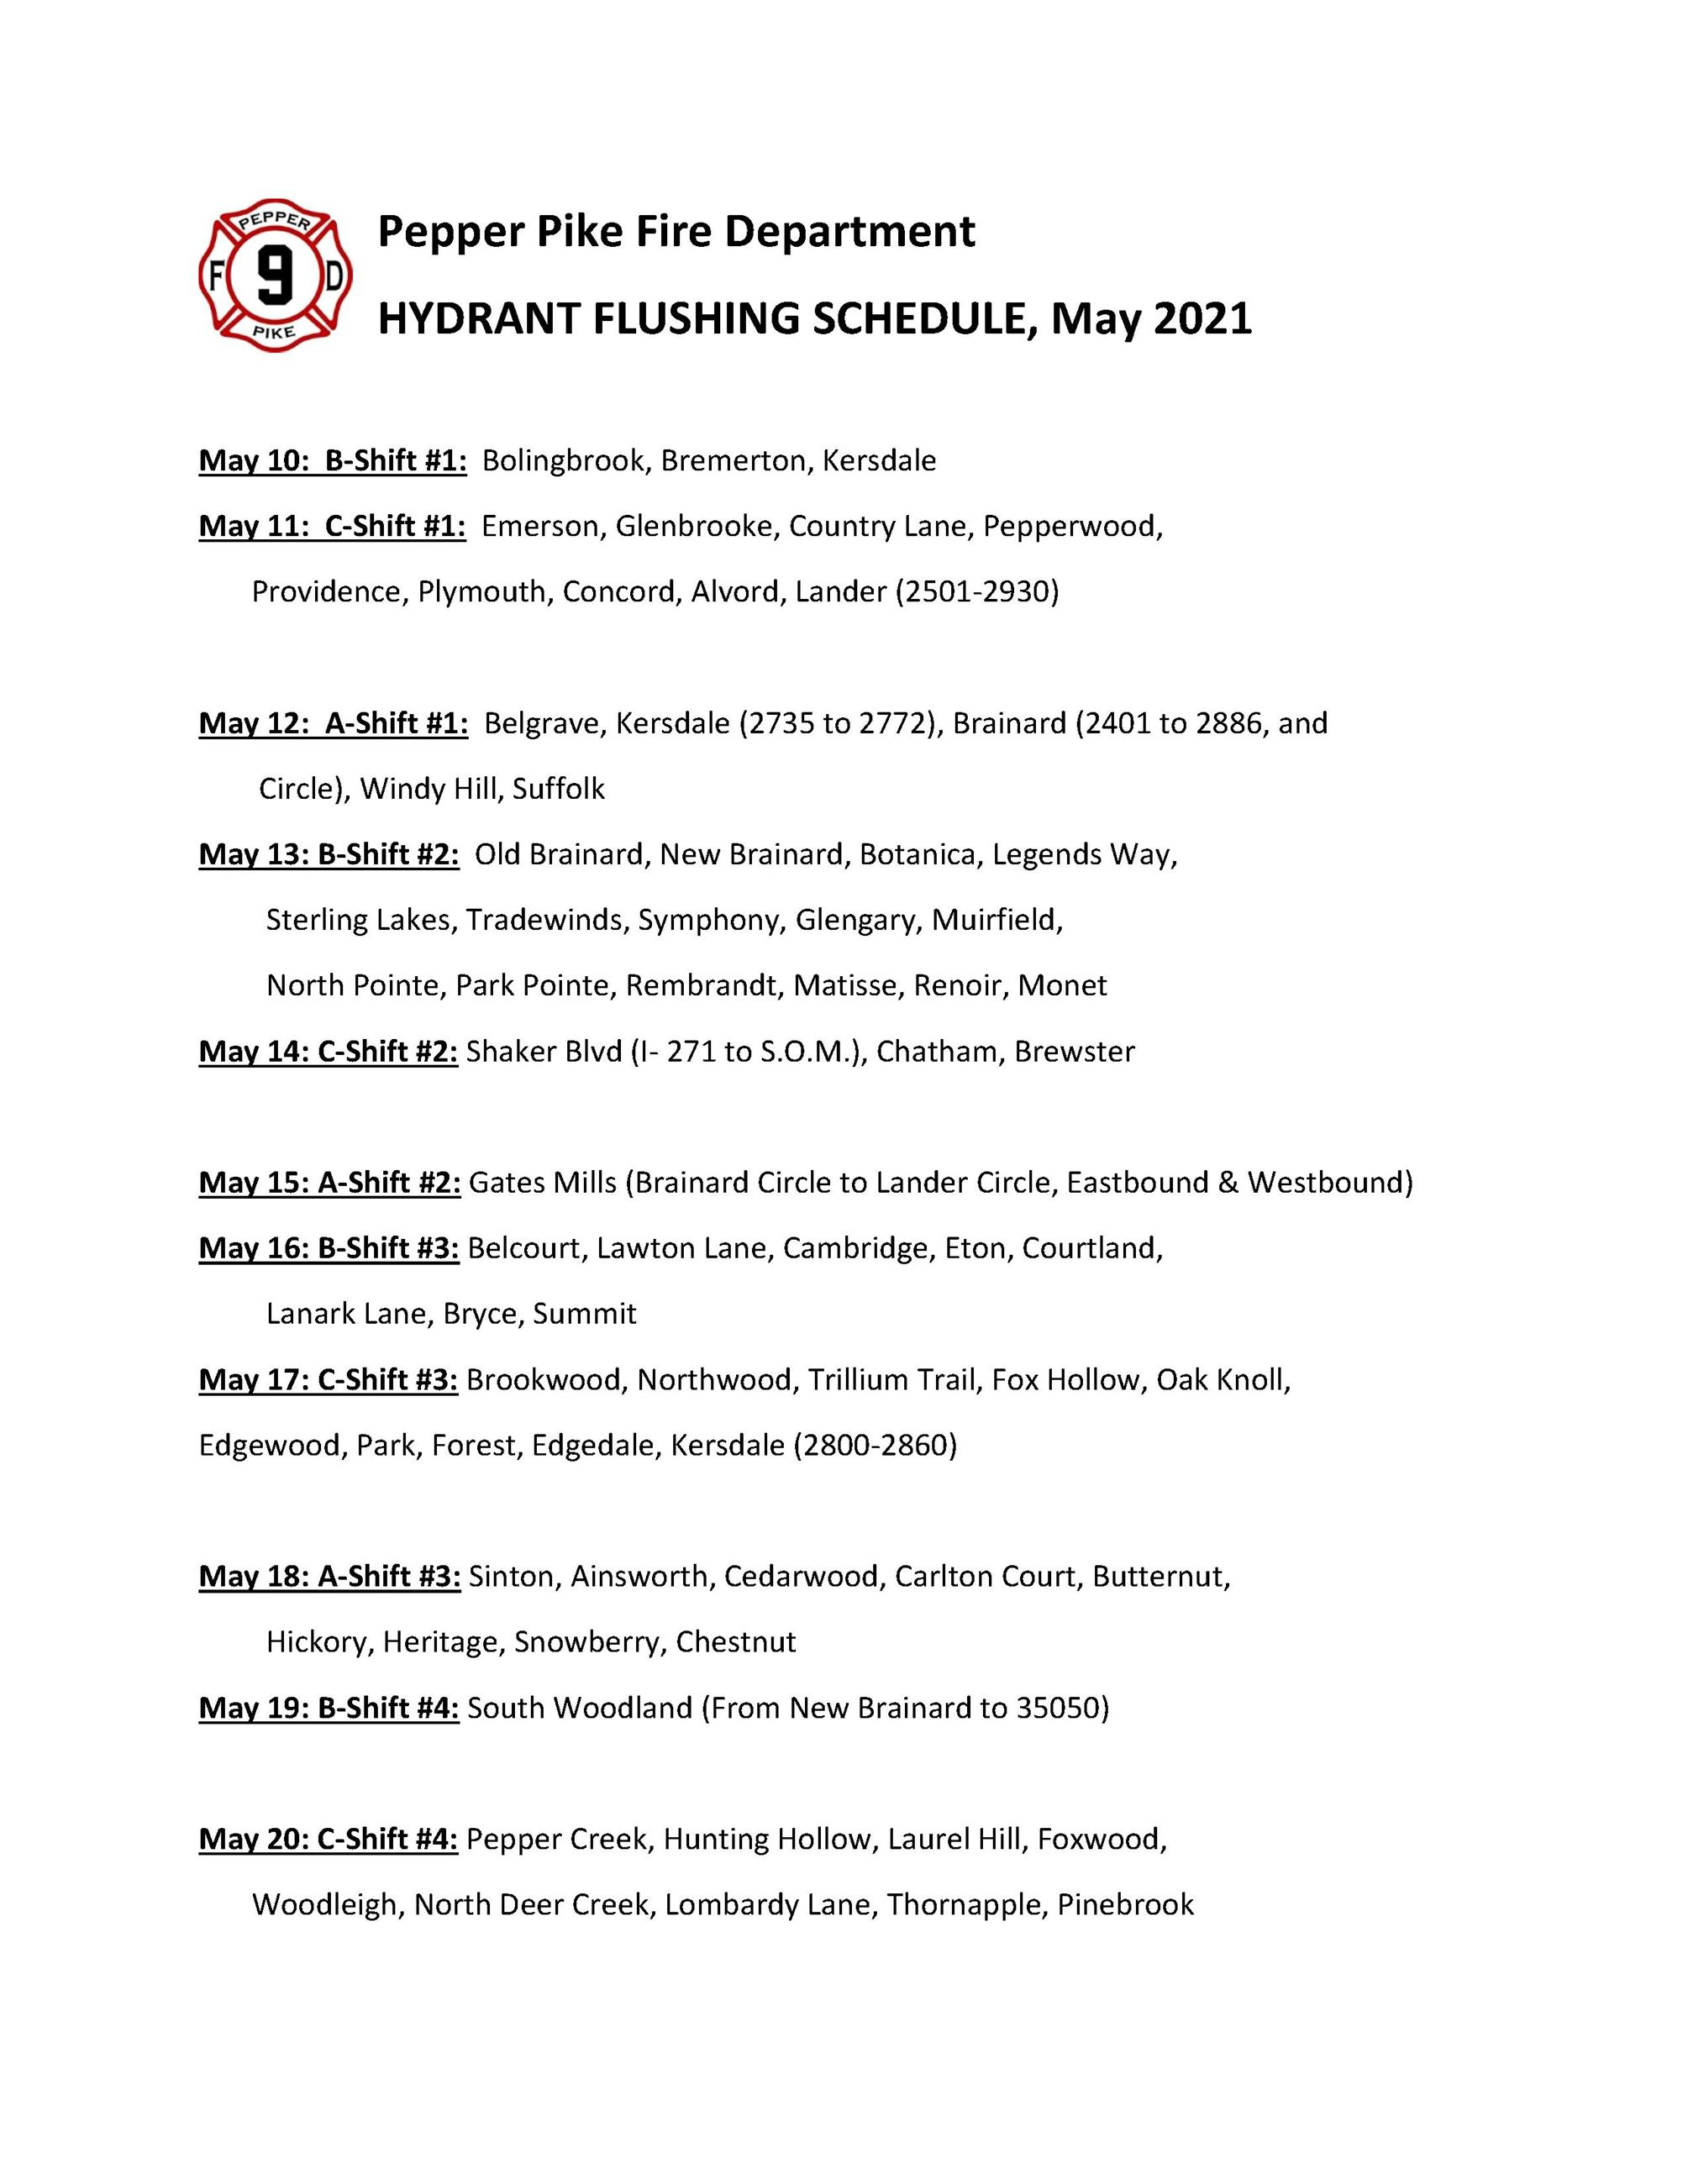 TENTATIVE FLUSHING SCHEDULE21-resident_1